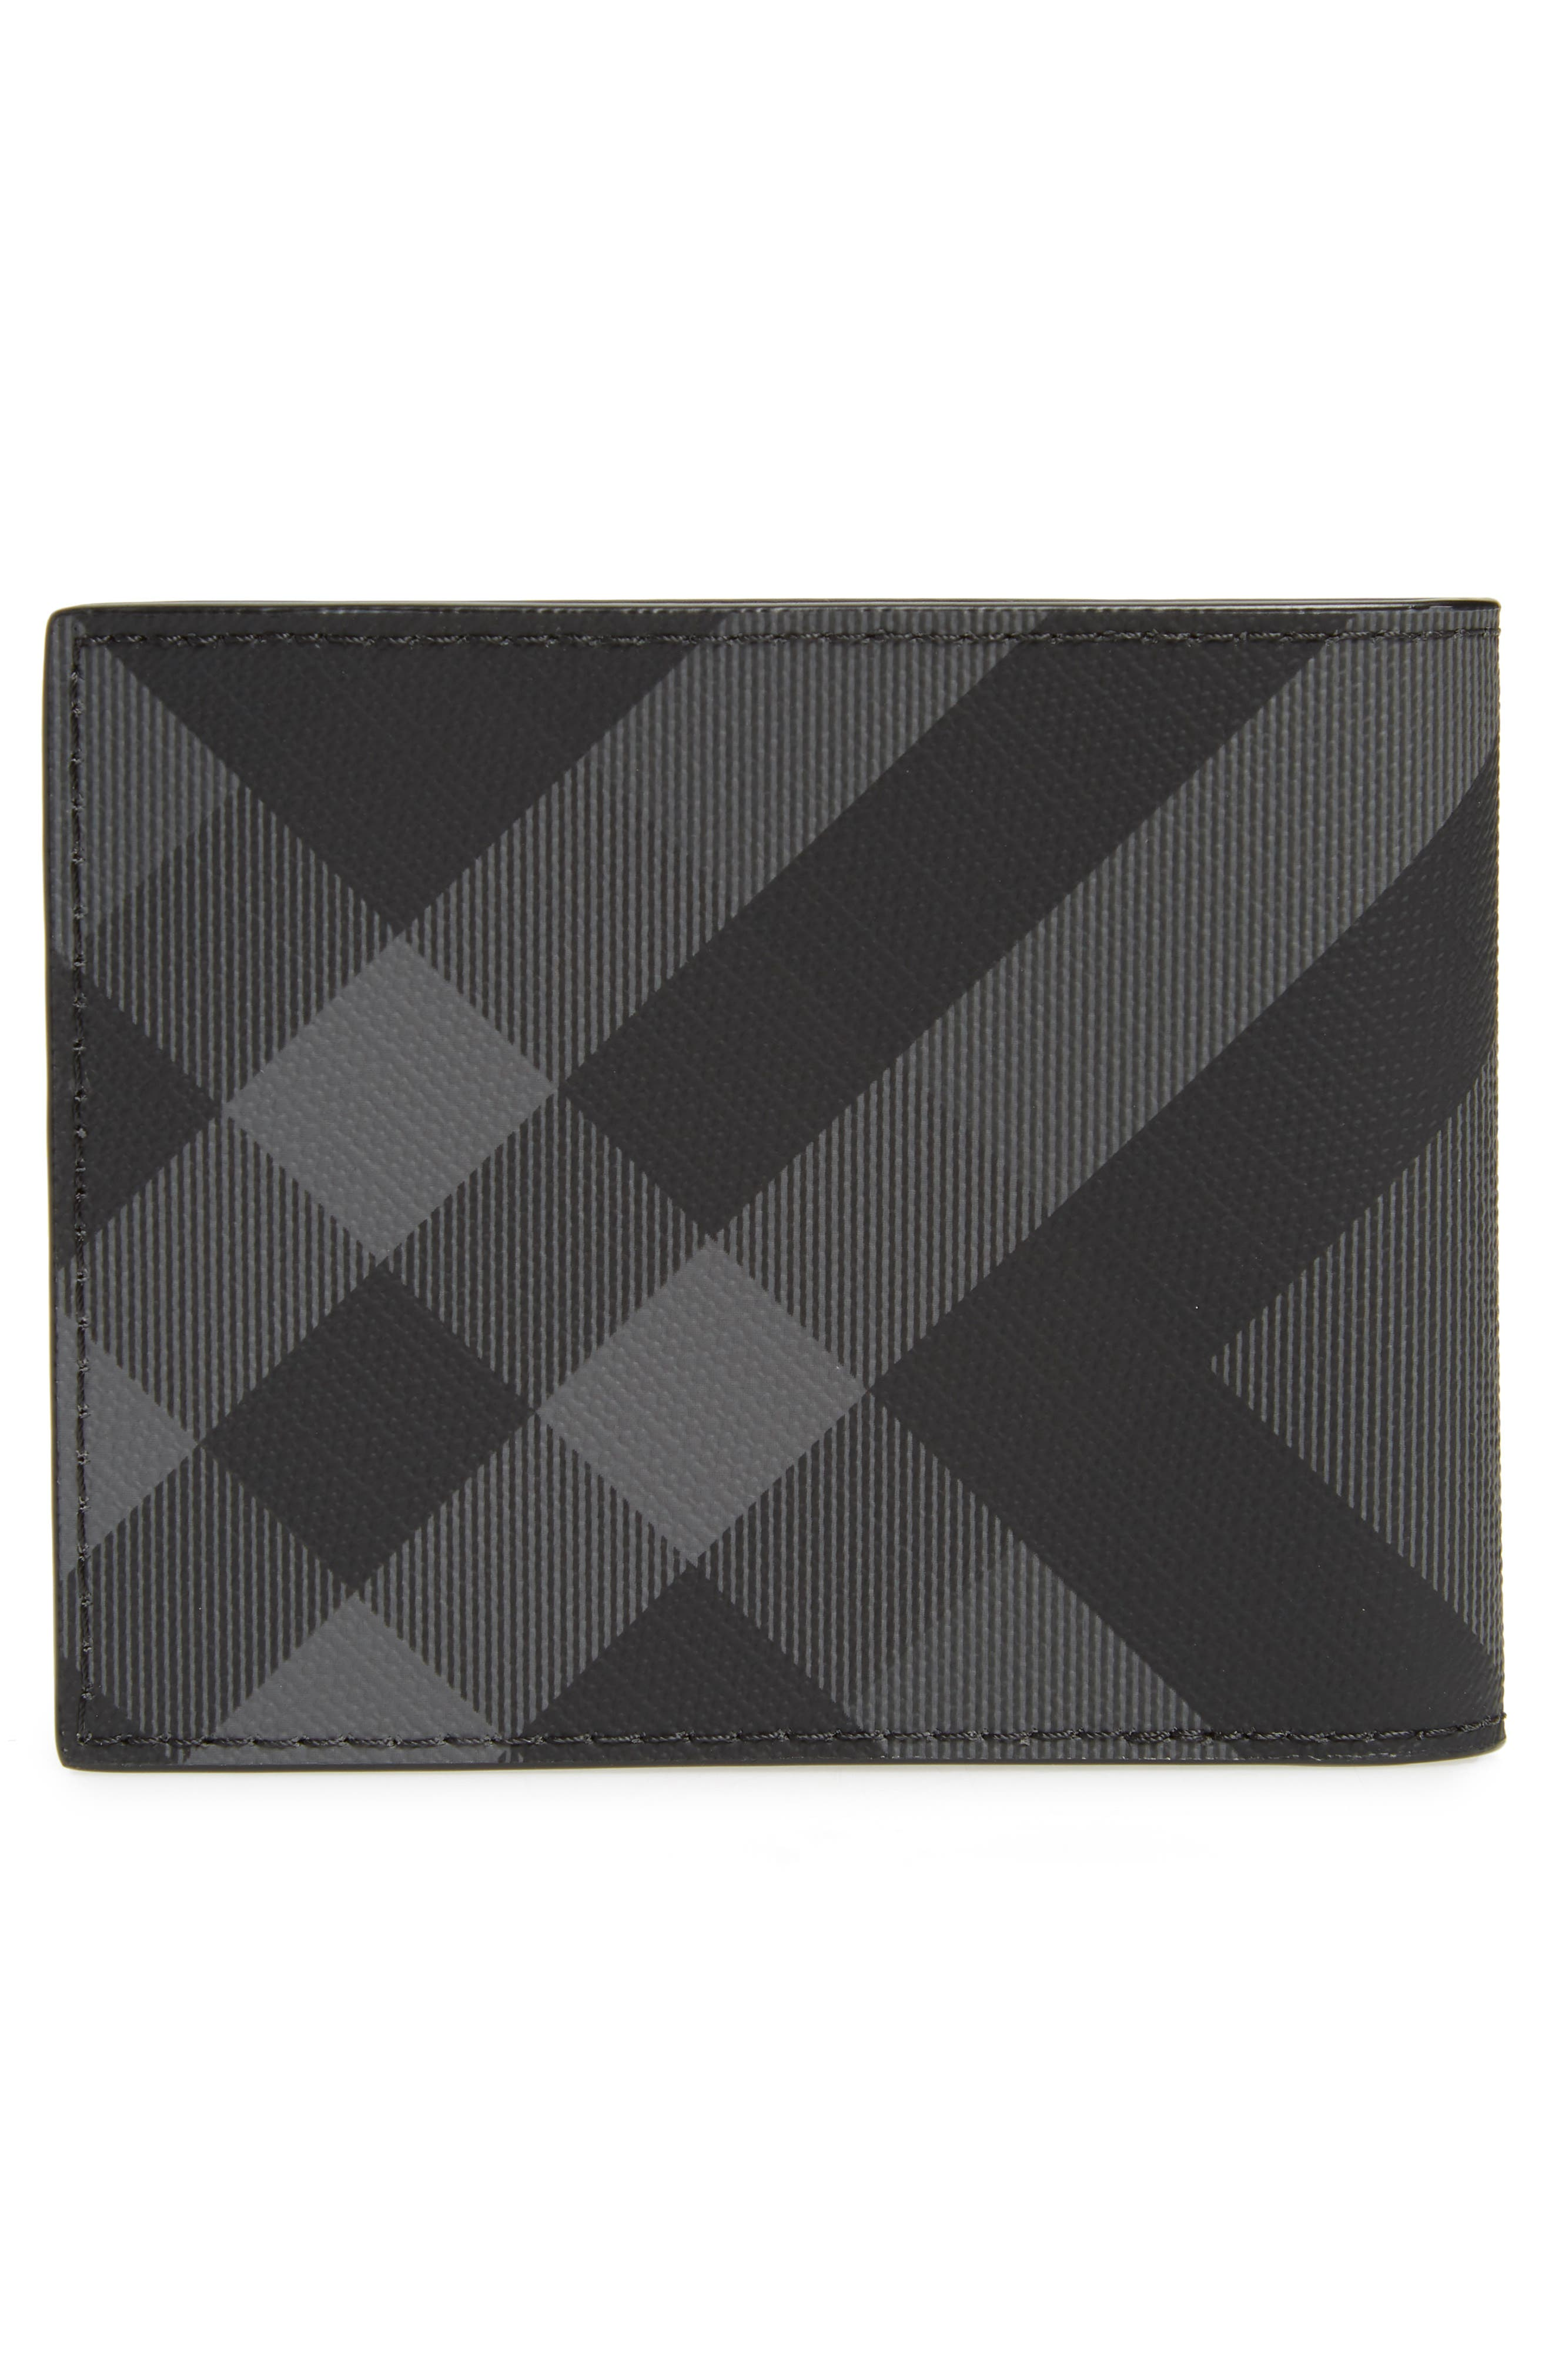 BURBERRY, Check Wallet, Alternate thumbnail 3, color, 020